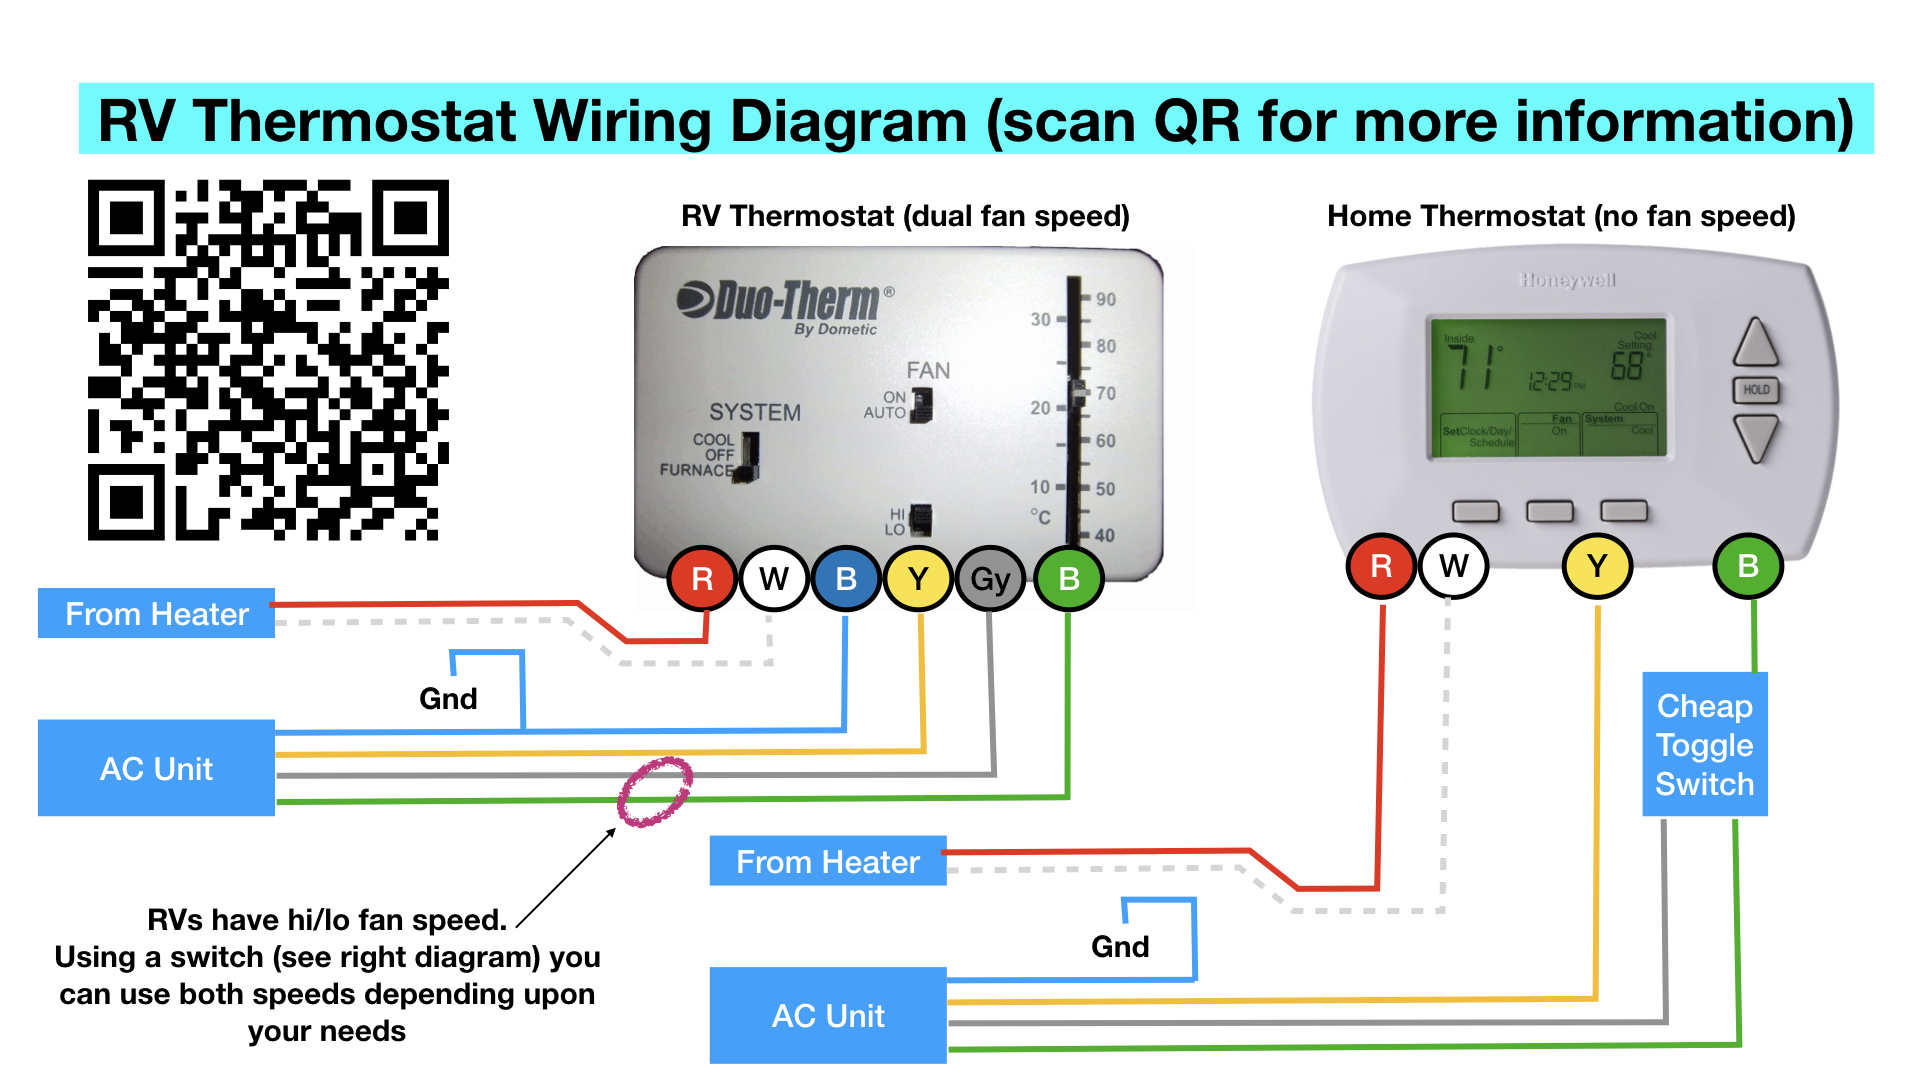 hight resolution of rv thermostat wiring diagram with conversion for home thermostat